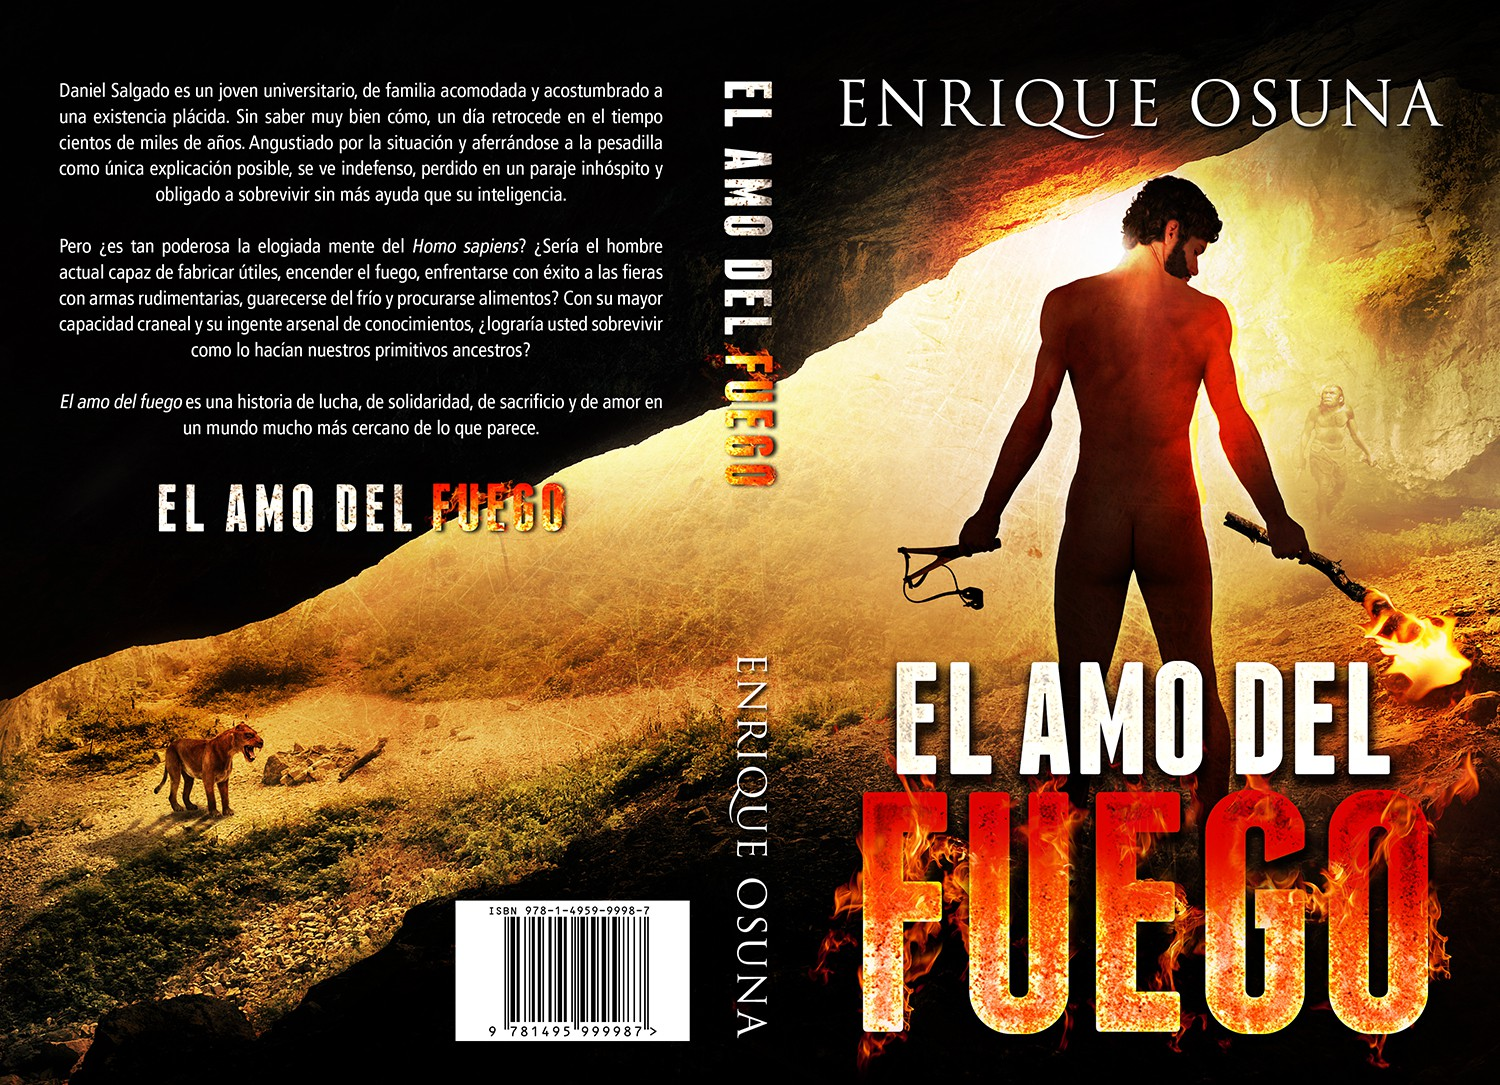 Cover for book. Most of the action takes place in prehistory.